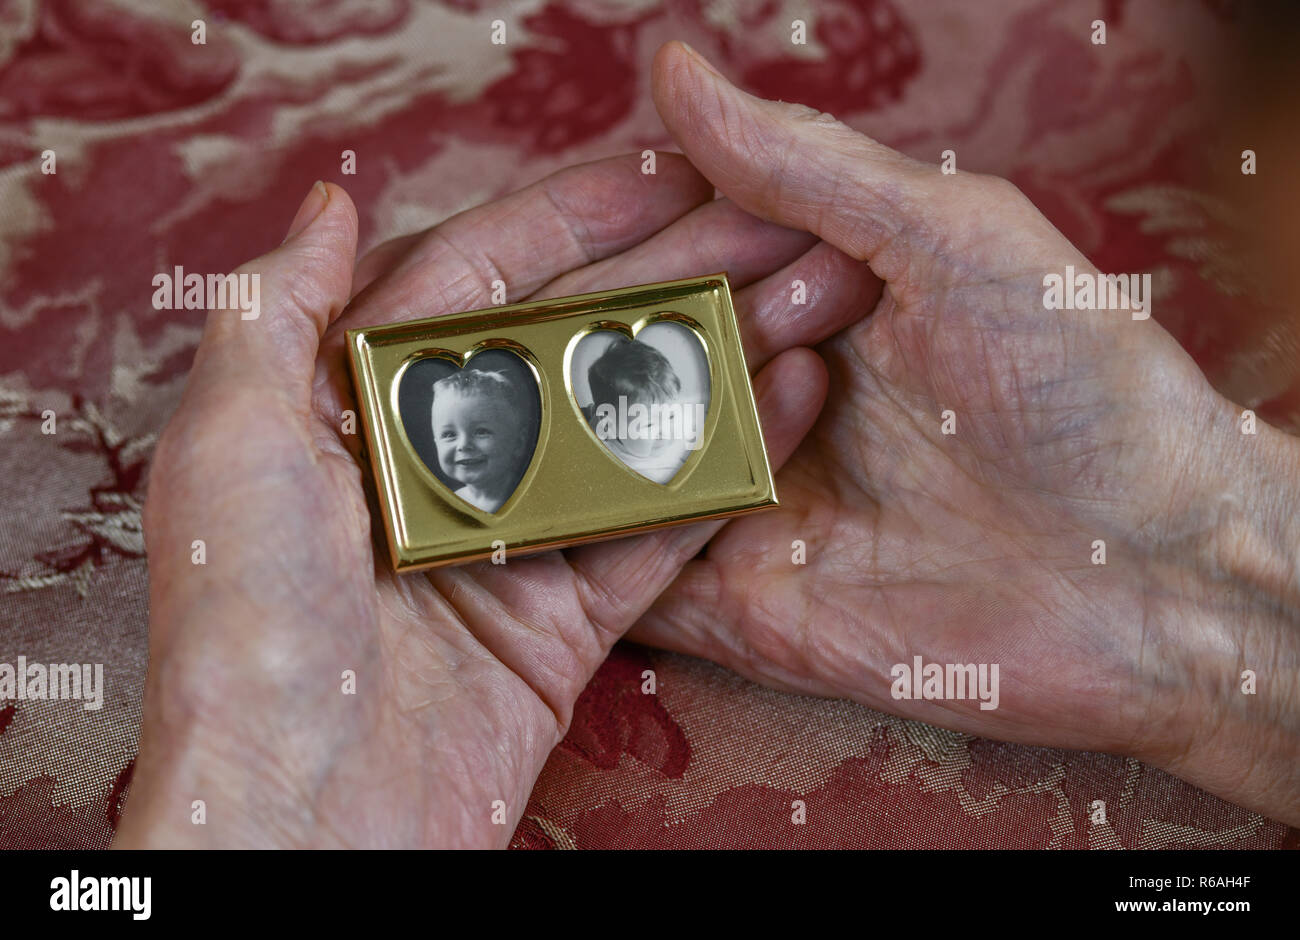 Symbolic photo, motherly love, picture frame, recollection, Symbolfoto, Mutterliebe, Bilderrahmen, Erinnerung - Stock Image